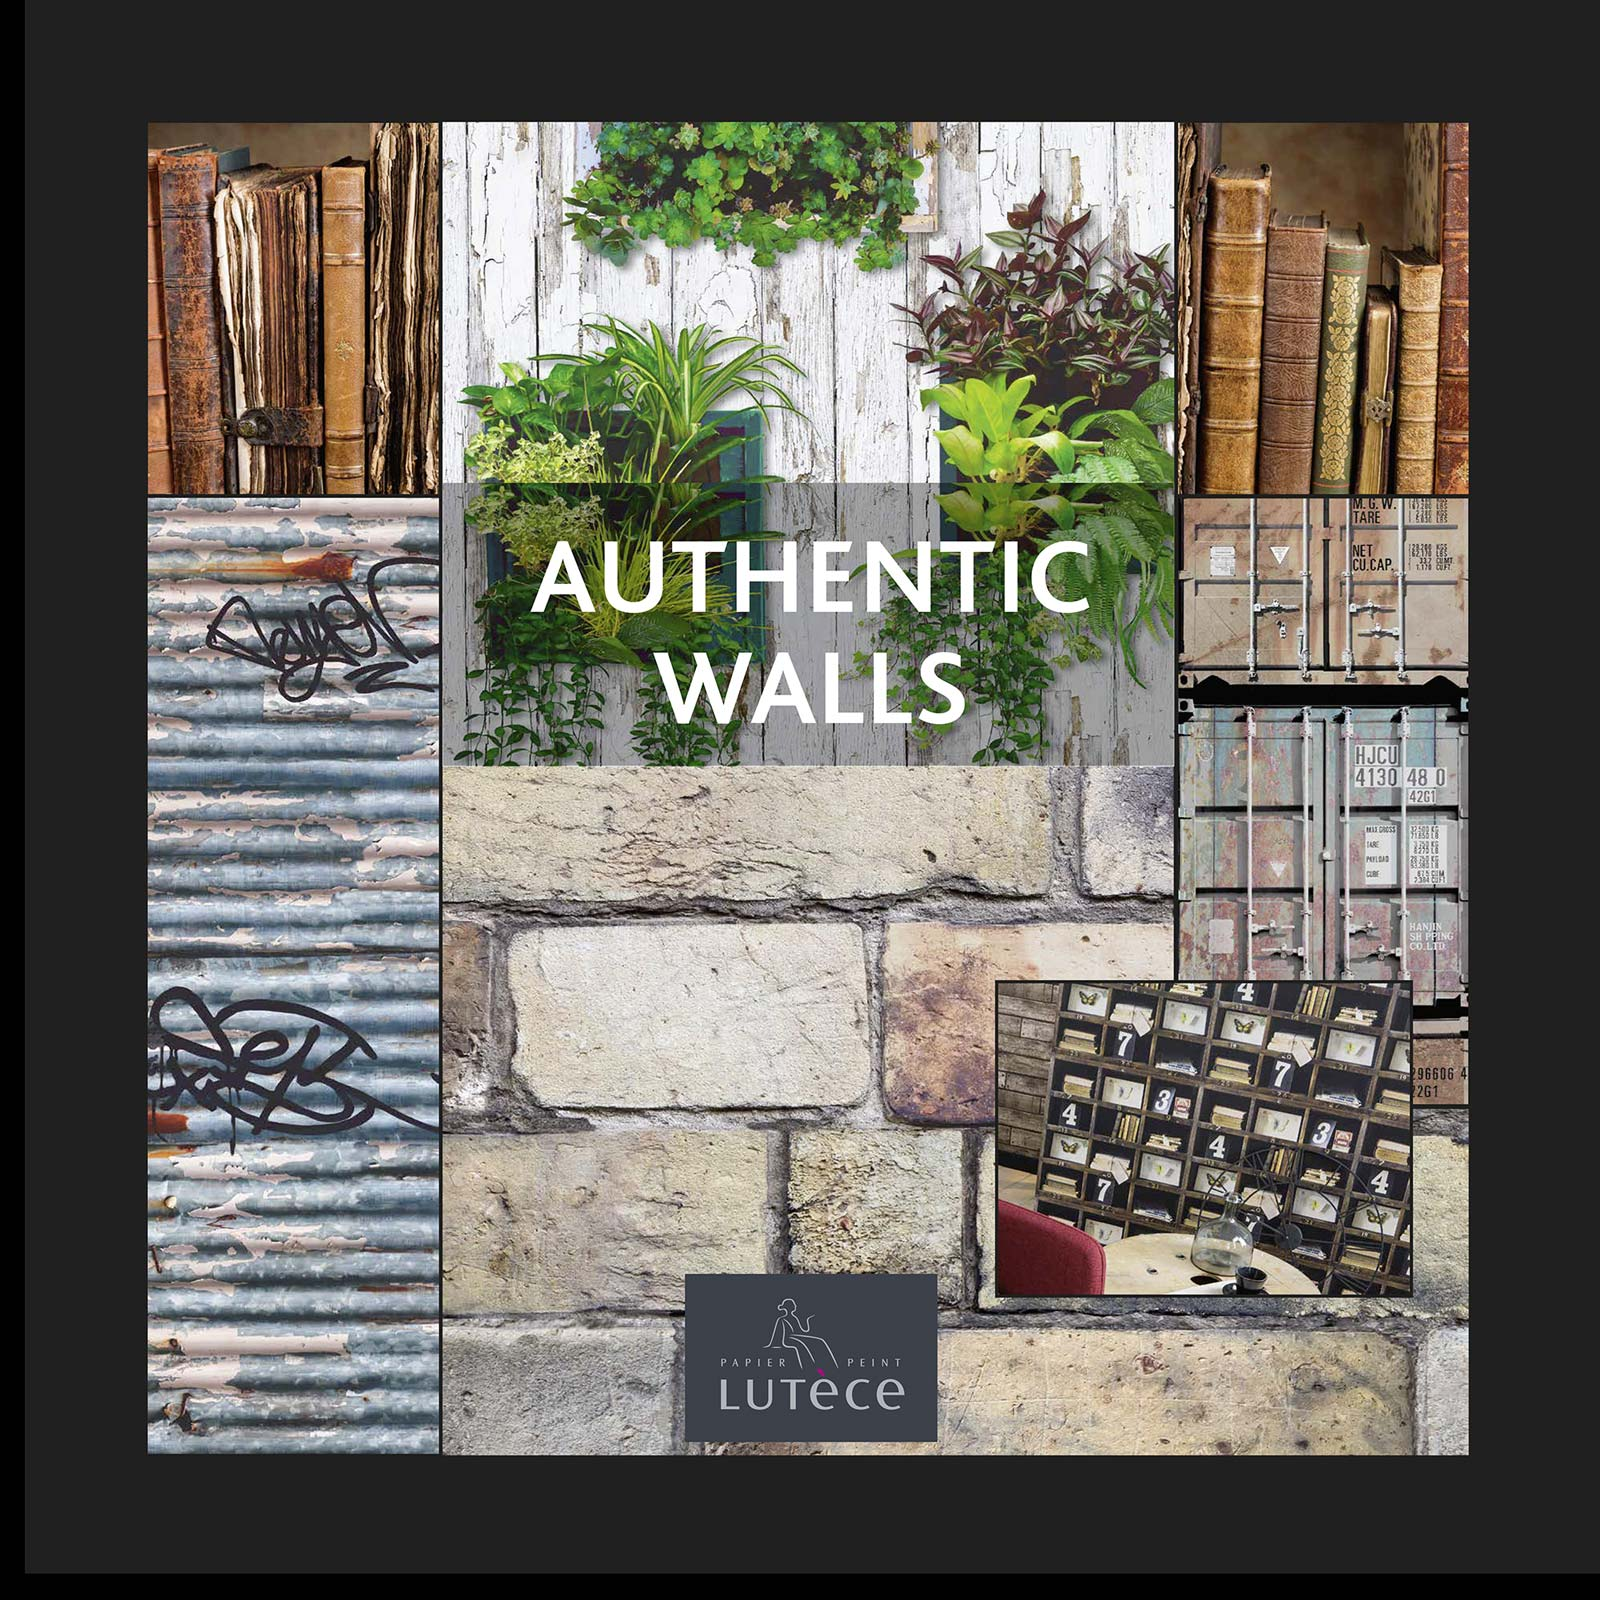 Lutèce Authentic Walls